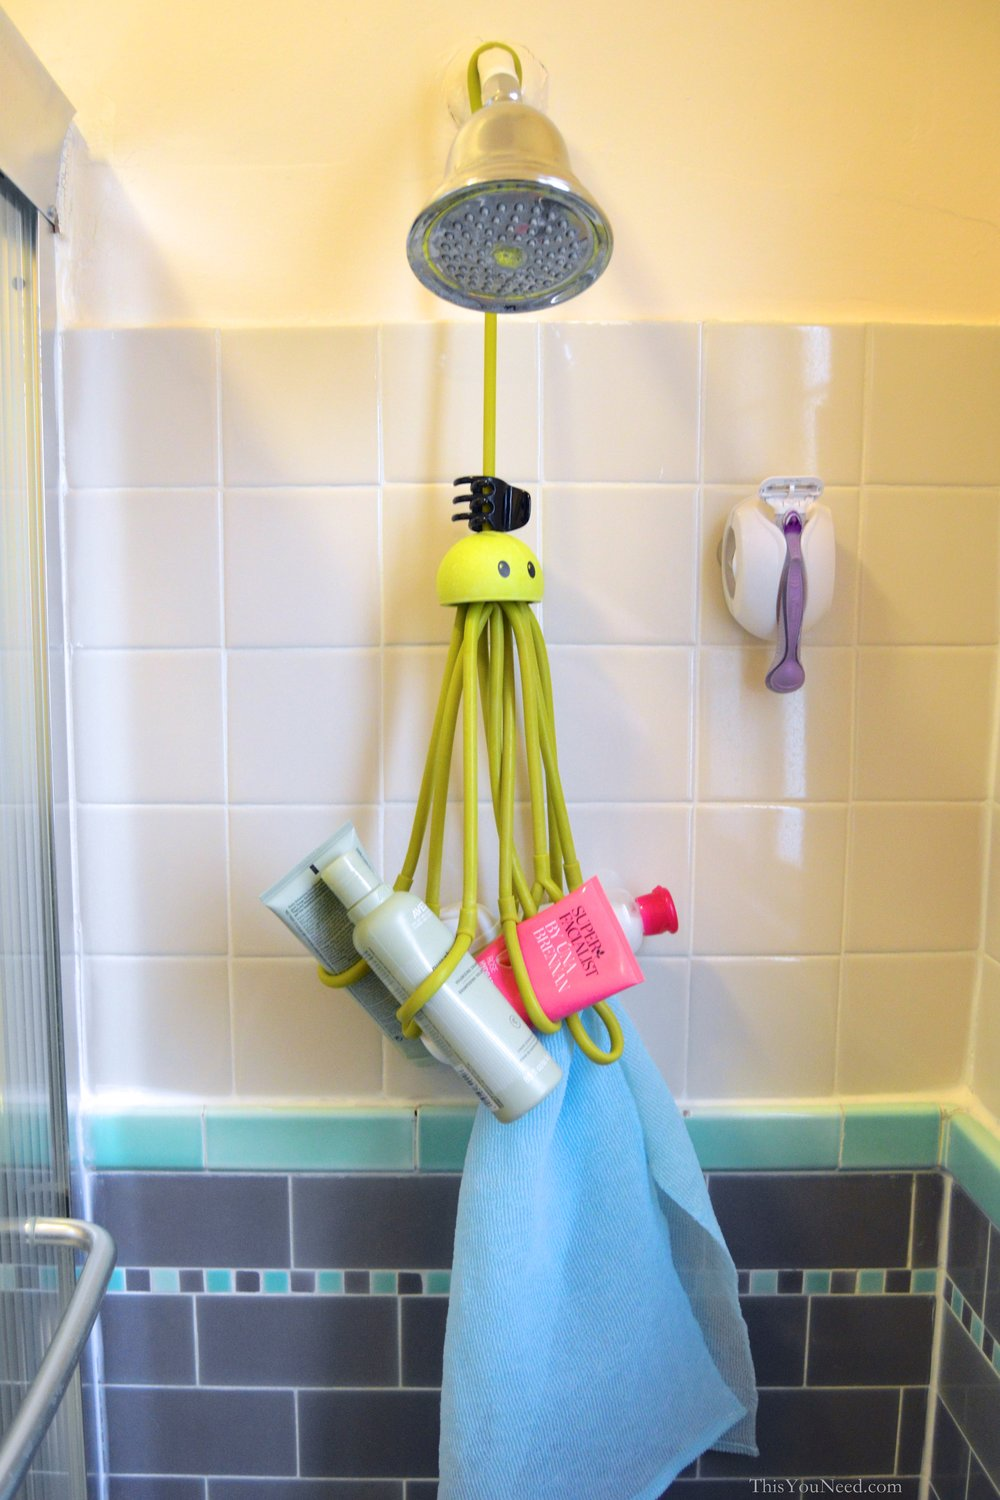 Shower-Squid-Full.jpg